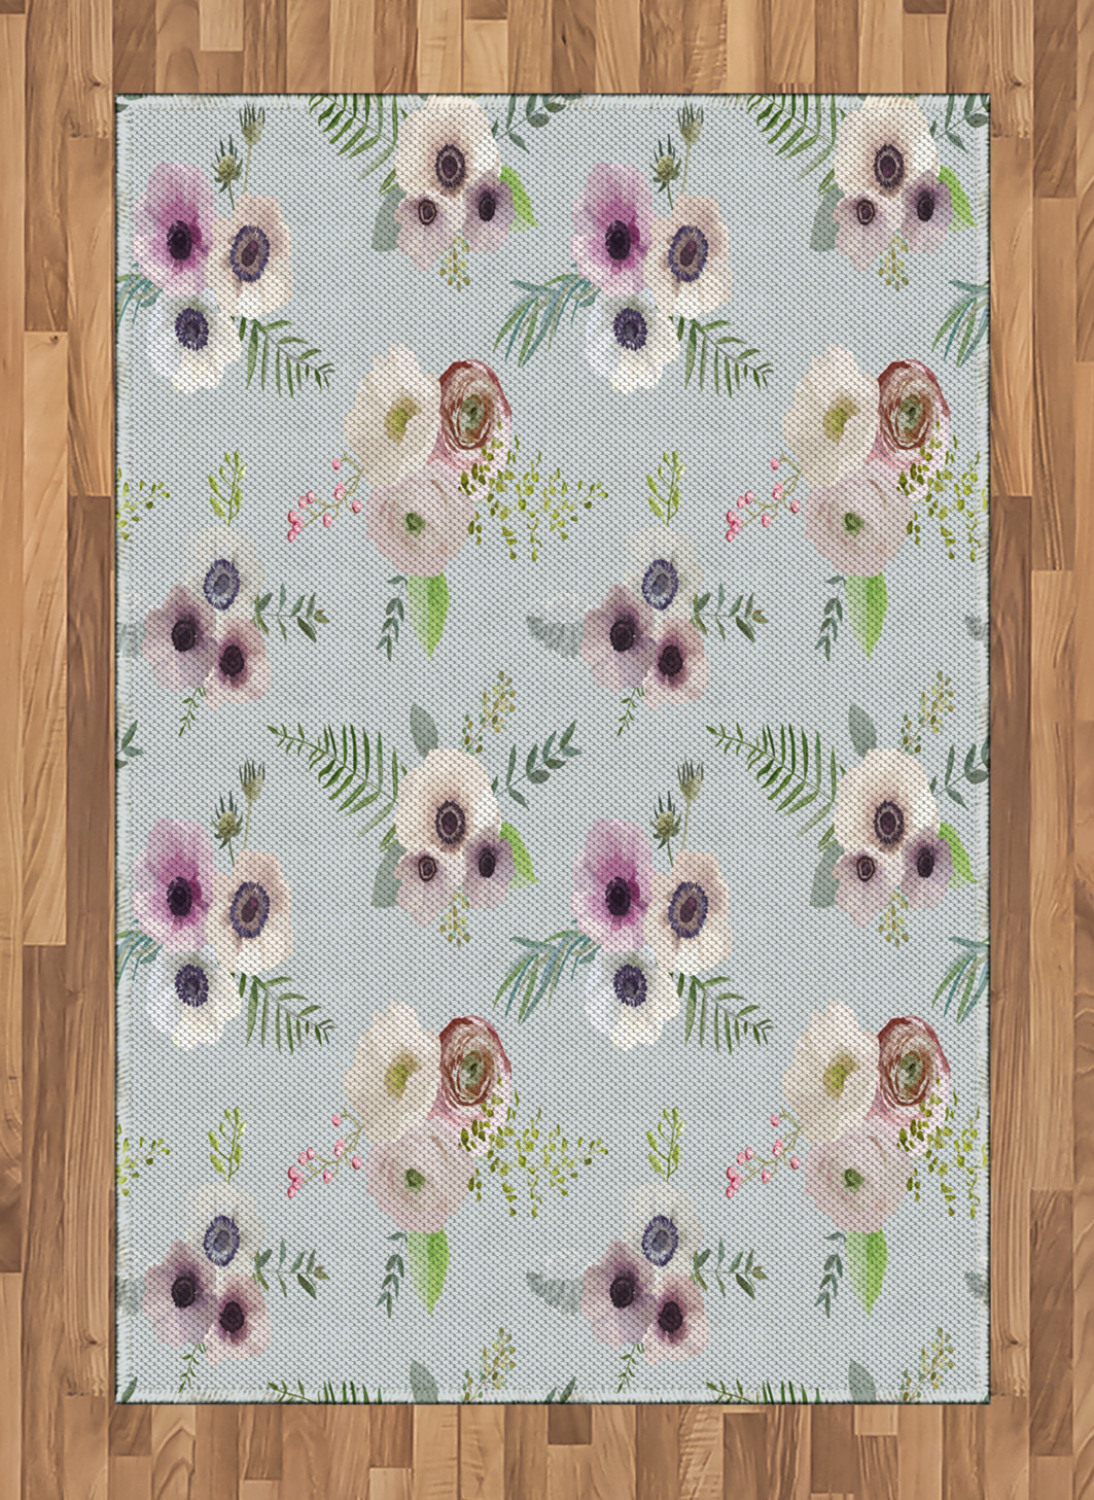 Anemone-Flower-Area-Rug-Decor-Flat-Woven-Accent-Rug-Home-Decor-2-Sizes-Ambesonne thumbnail 43